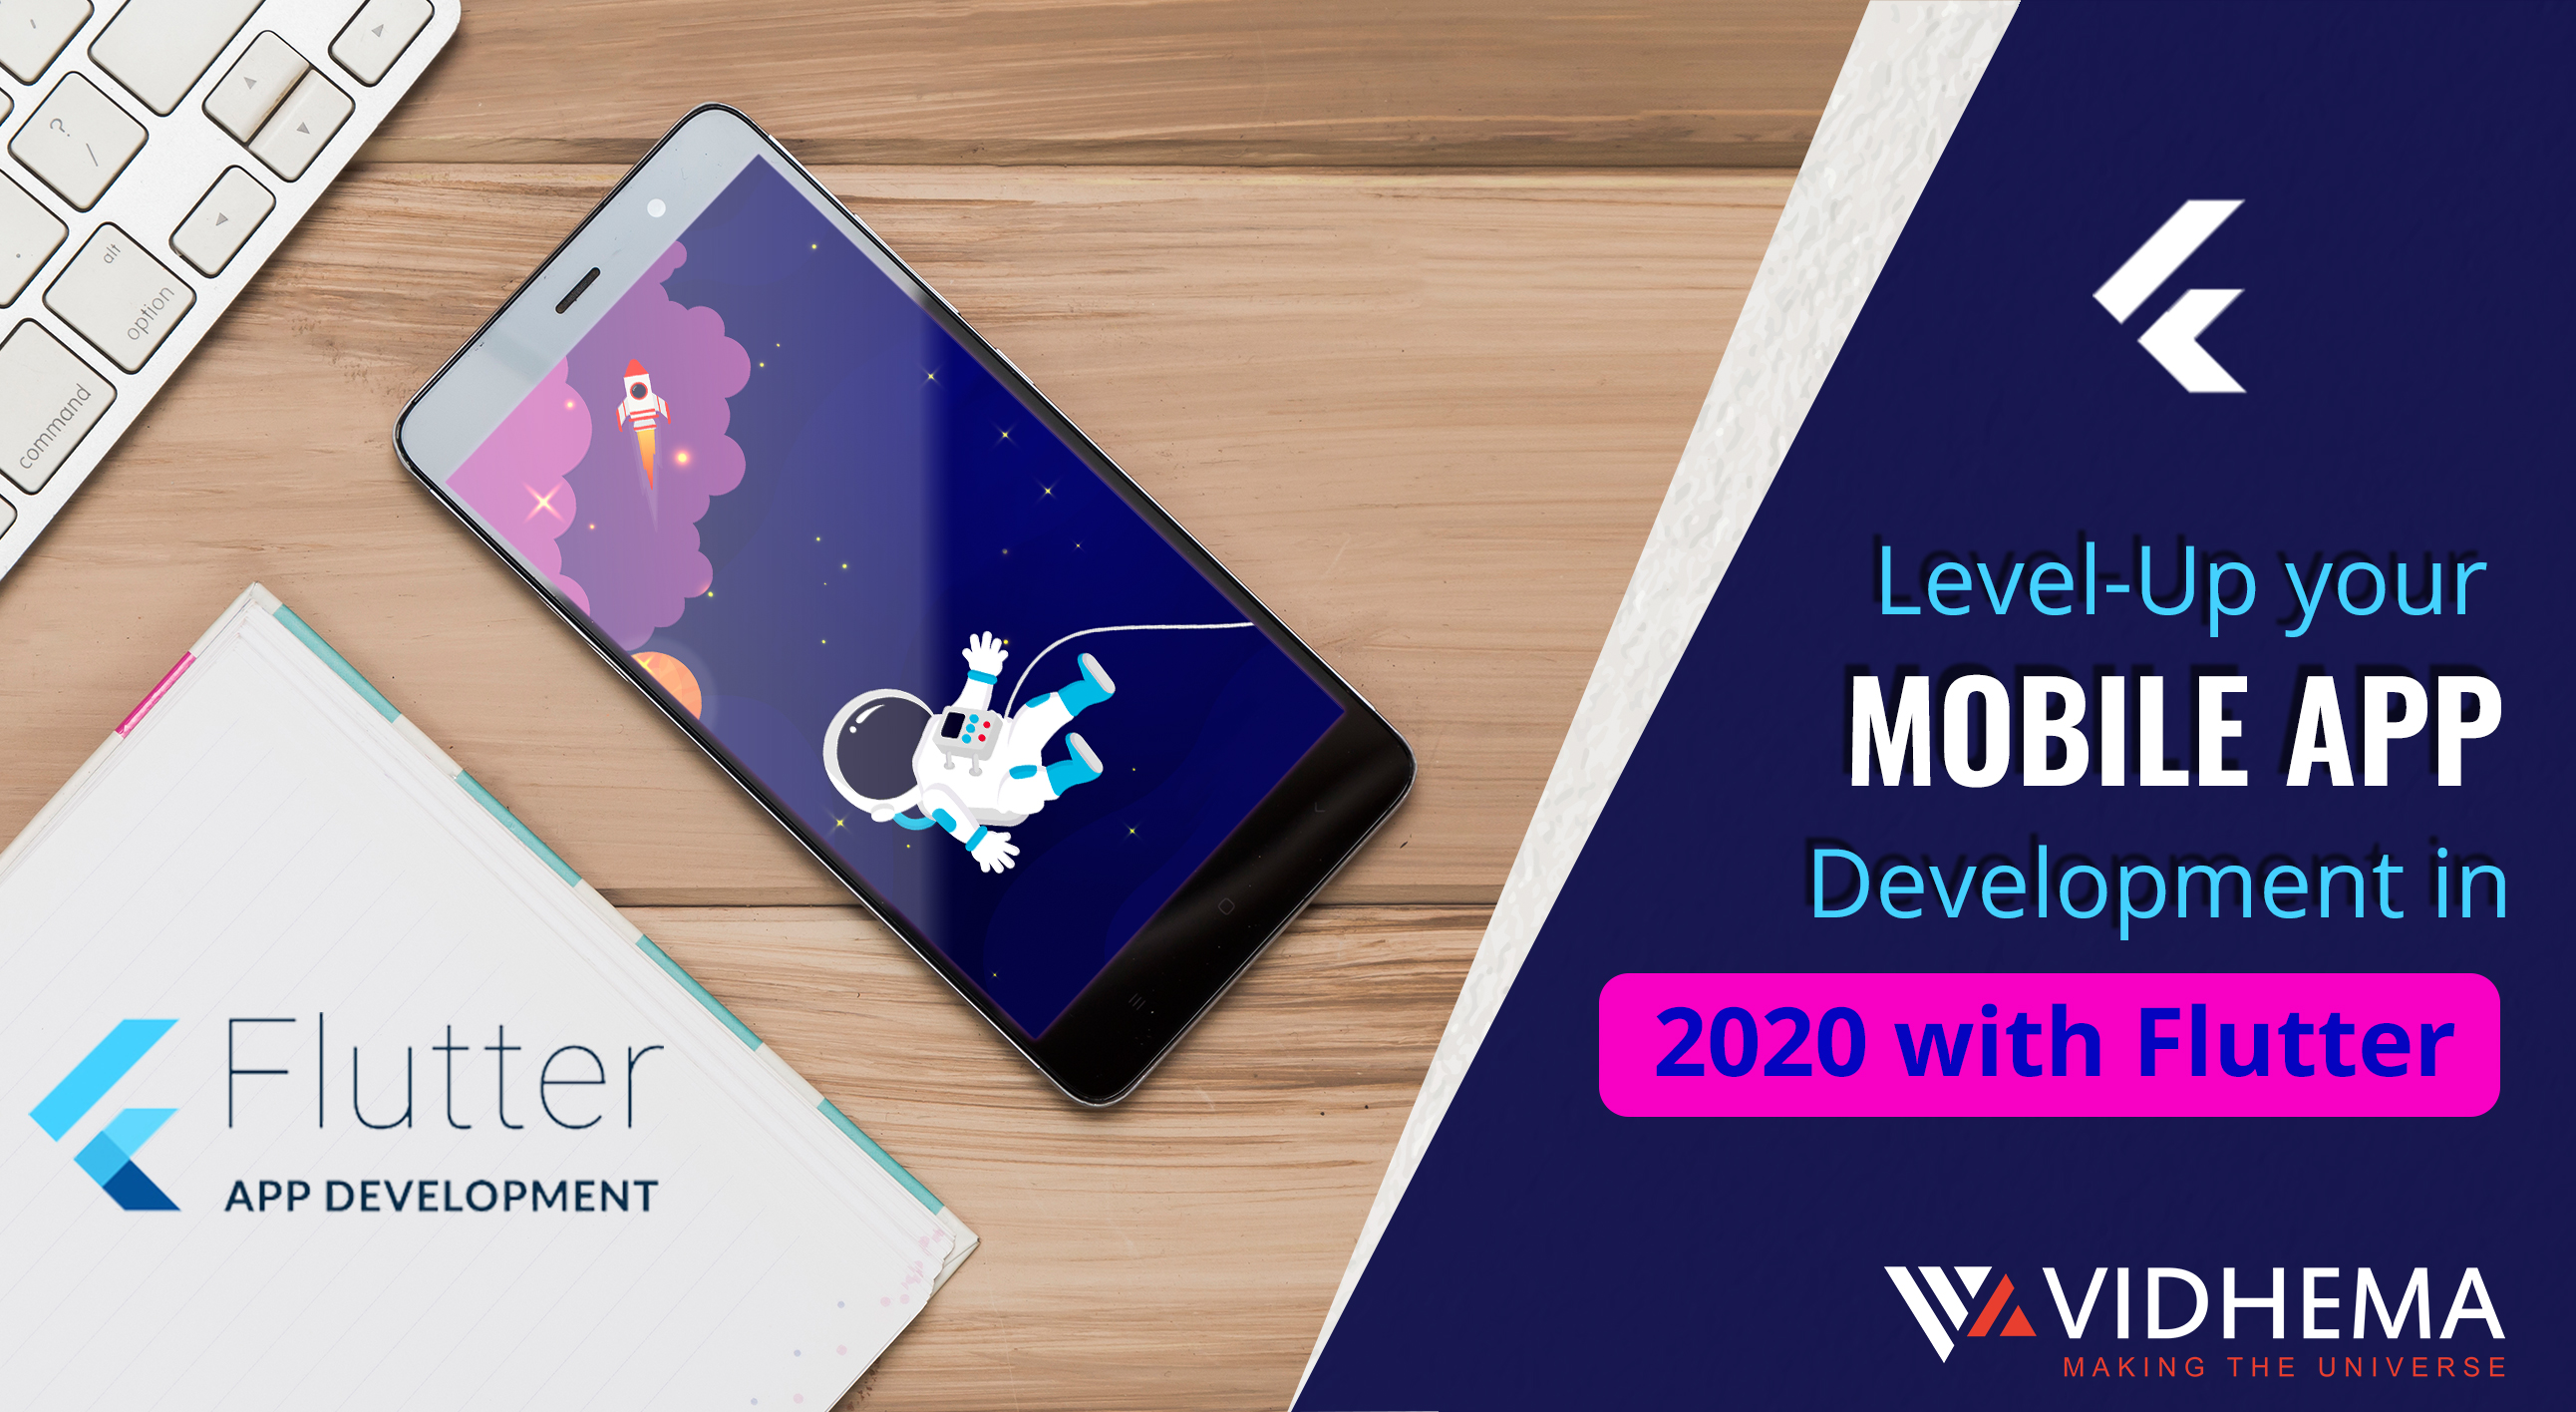 Level-Up your Mobile App Development in 2020 with Flutter